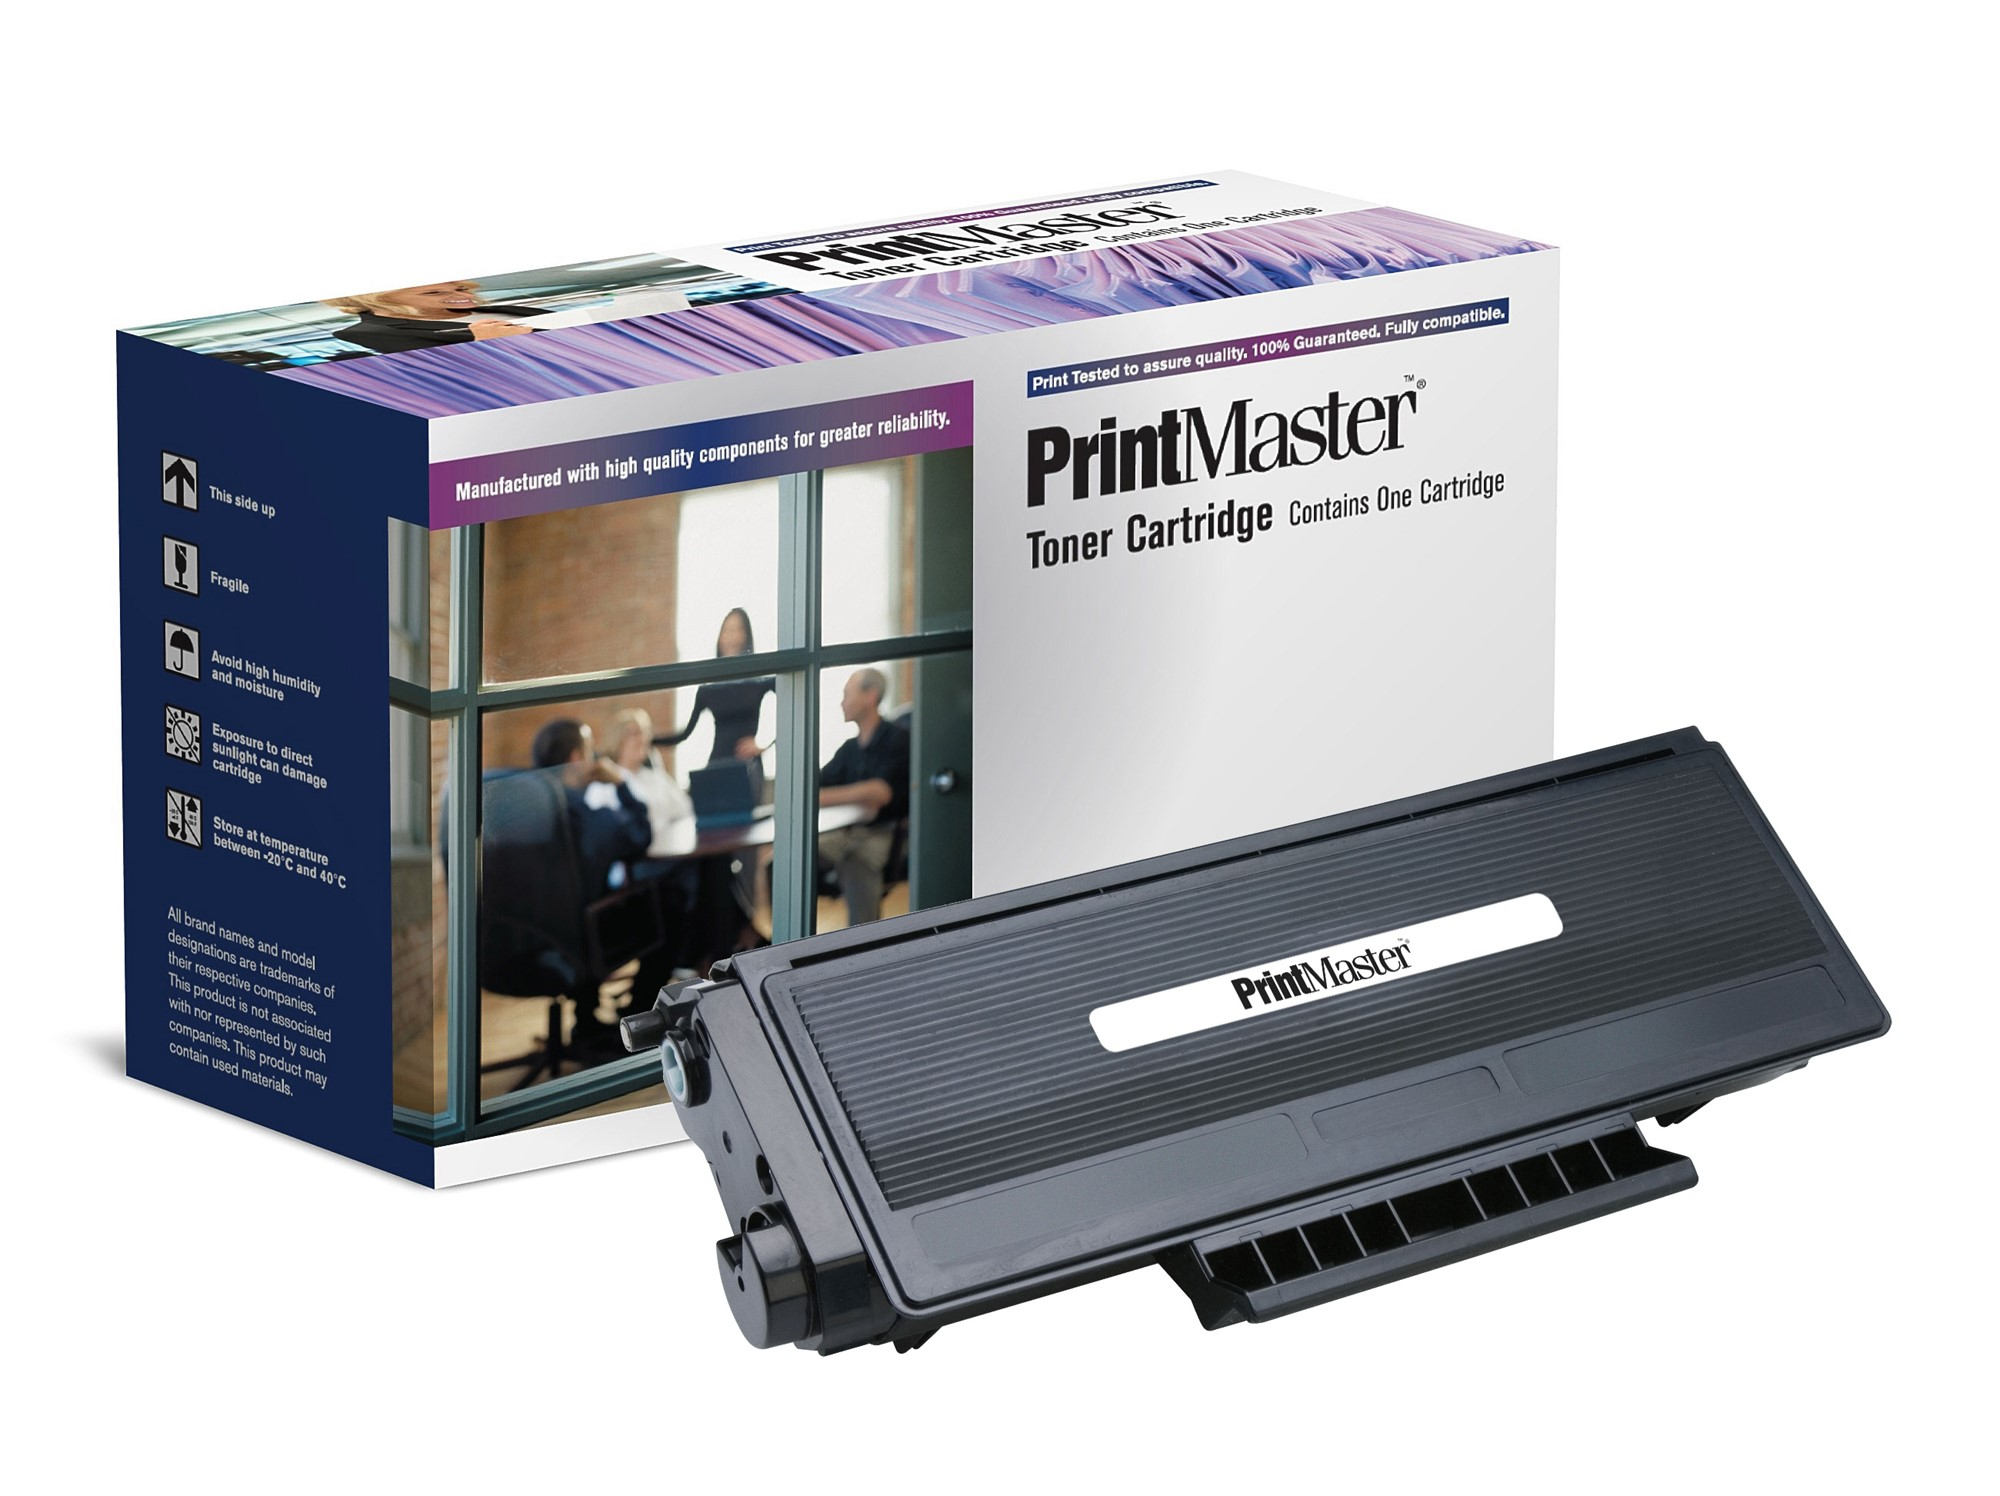 PrintMaster Brother HL5240 7K (7105A)TN3170